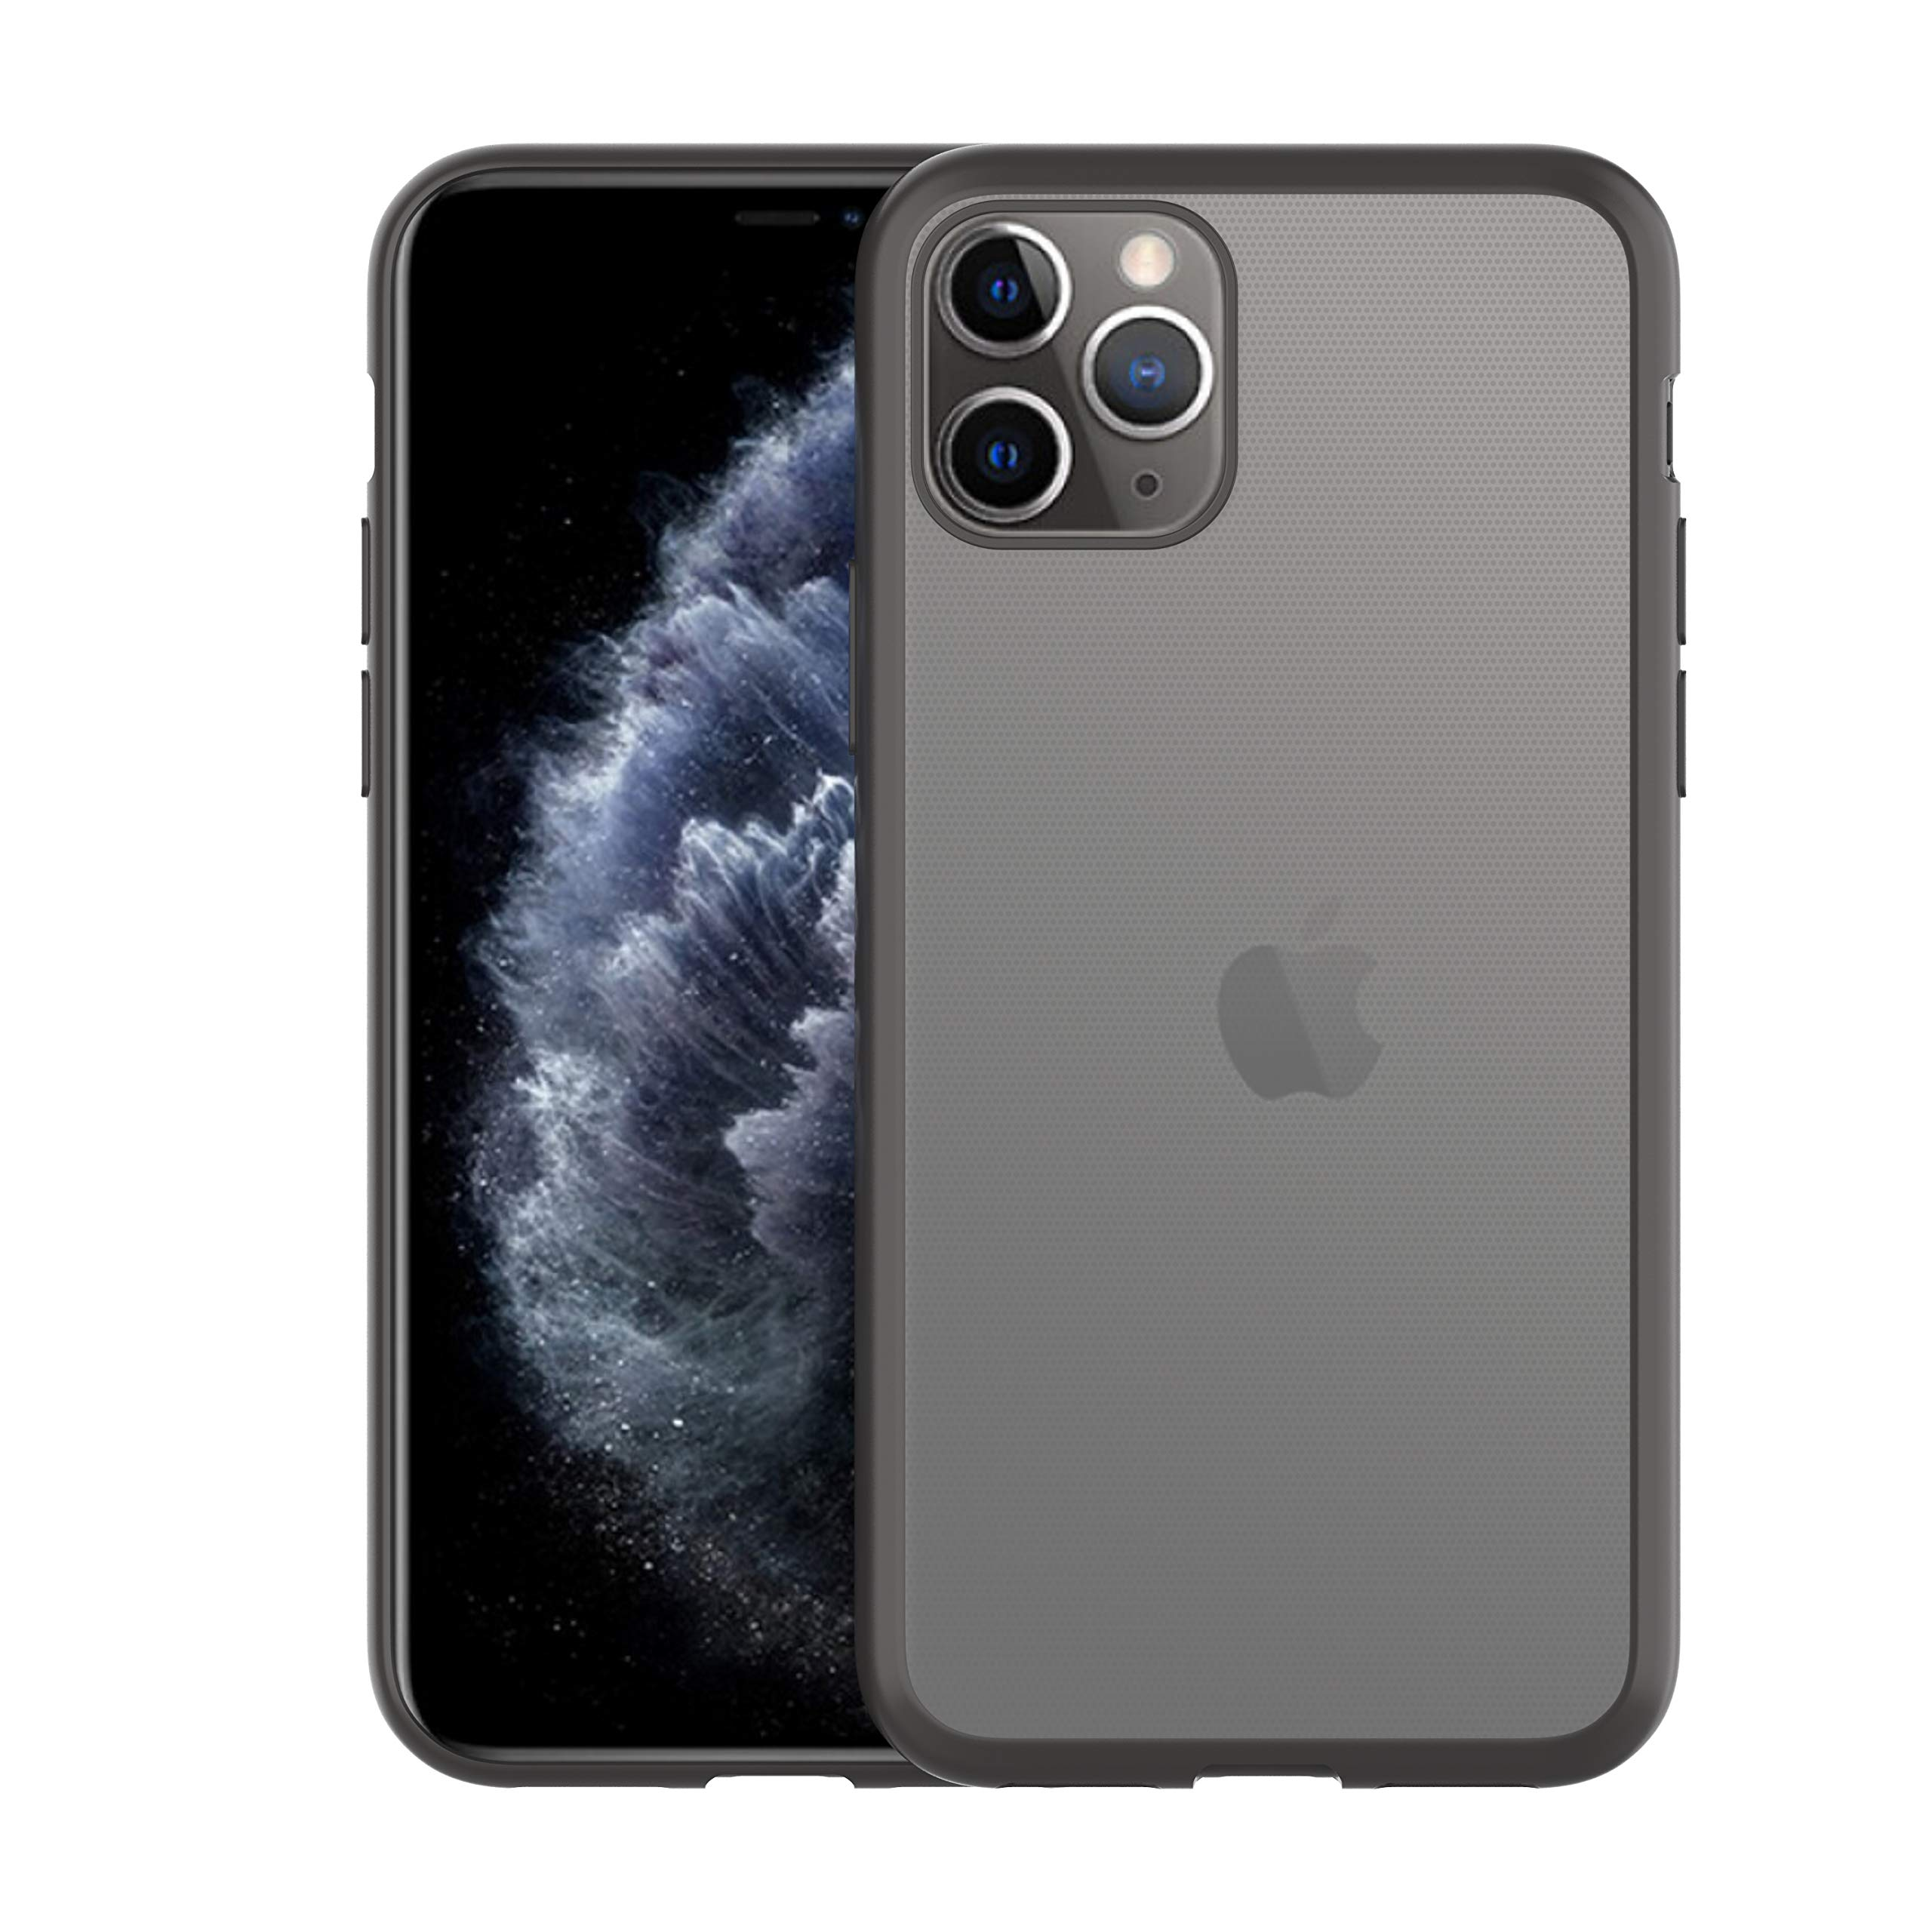 COWCHUHNG Phone Case,Compatible with iPhone 11 Pro max,Ultra-Thin Soft TPU Material,Complete Protective Cover Against Falling(Black